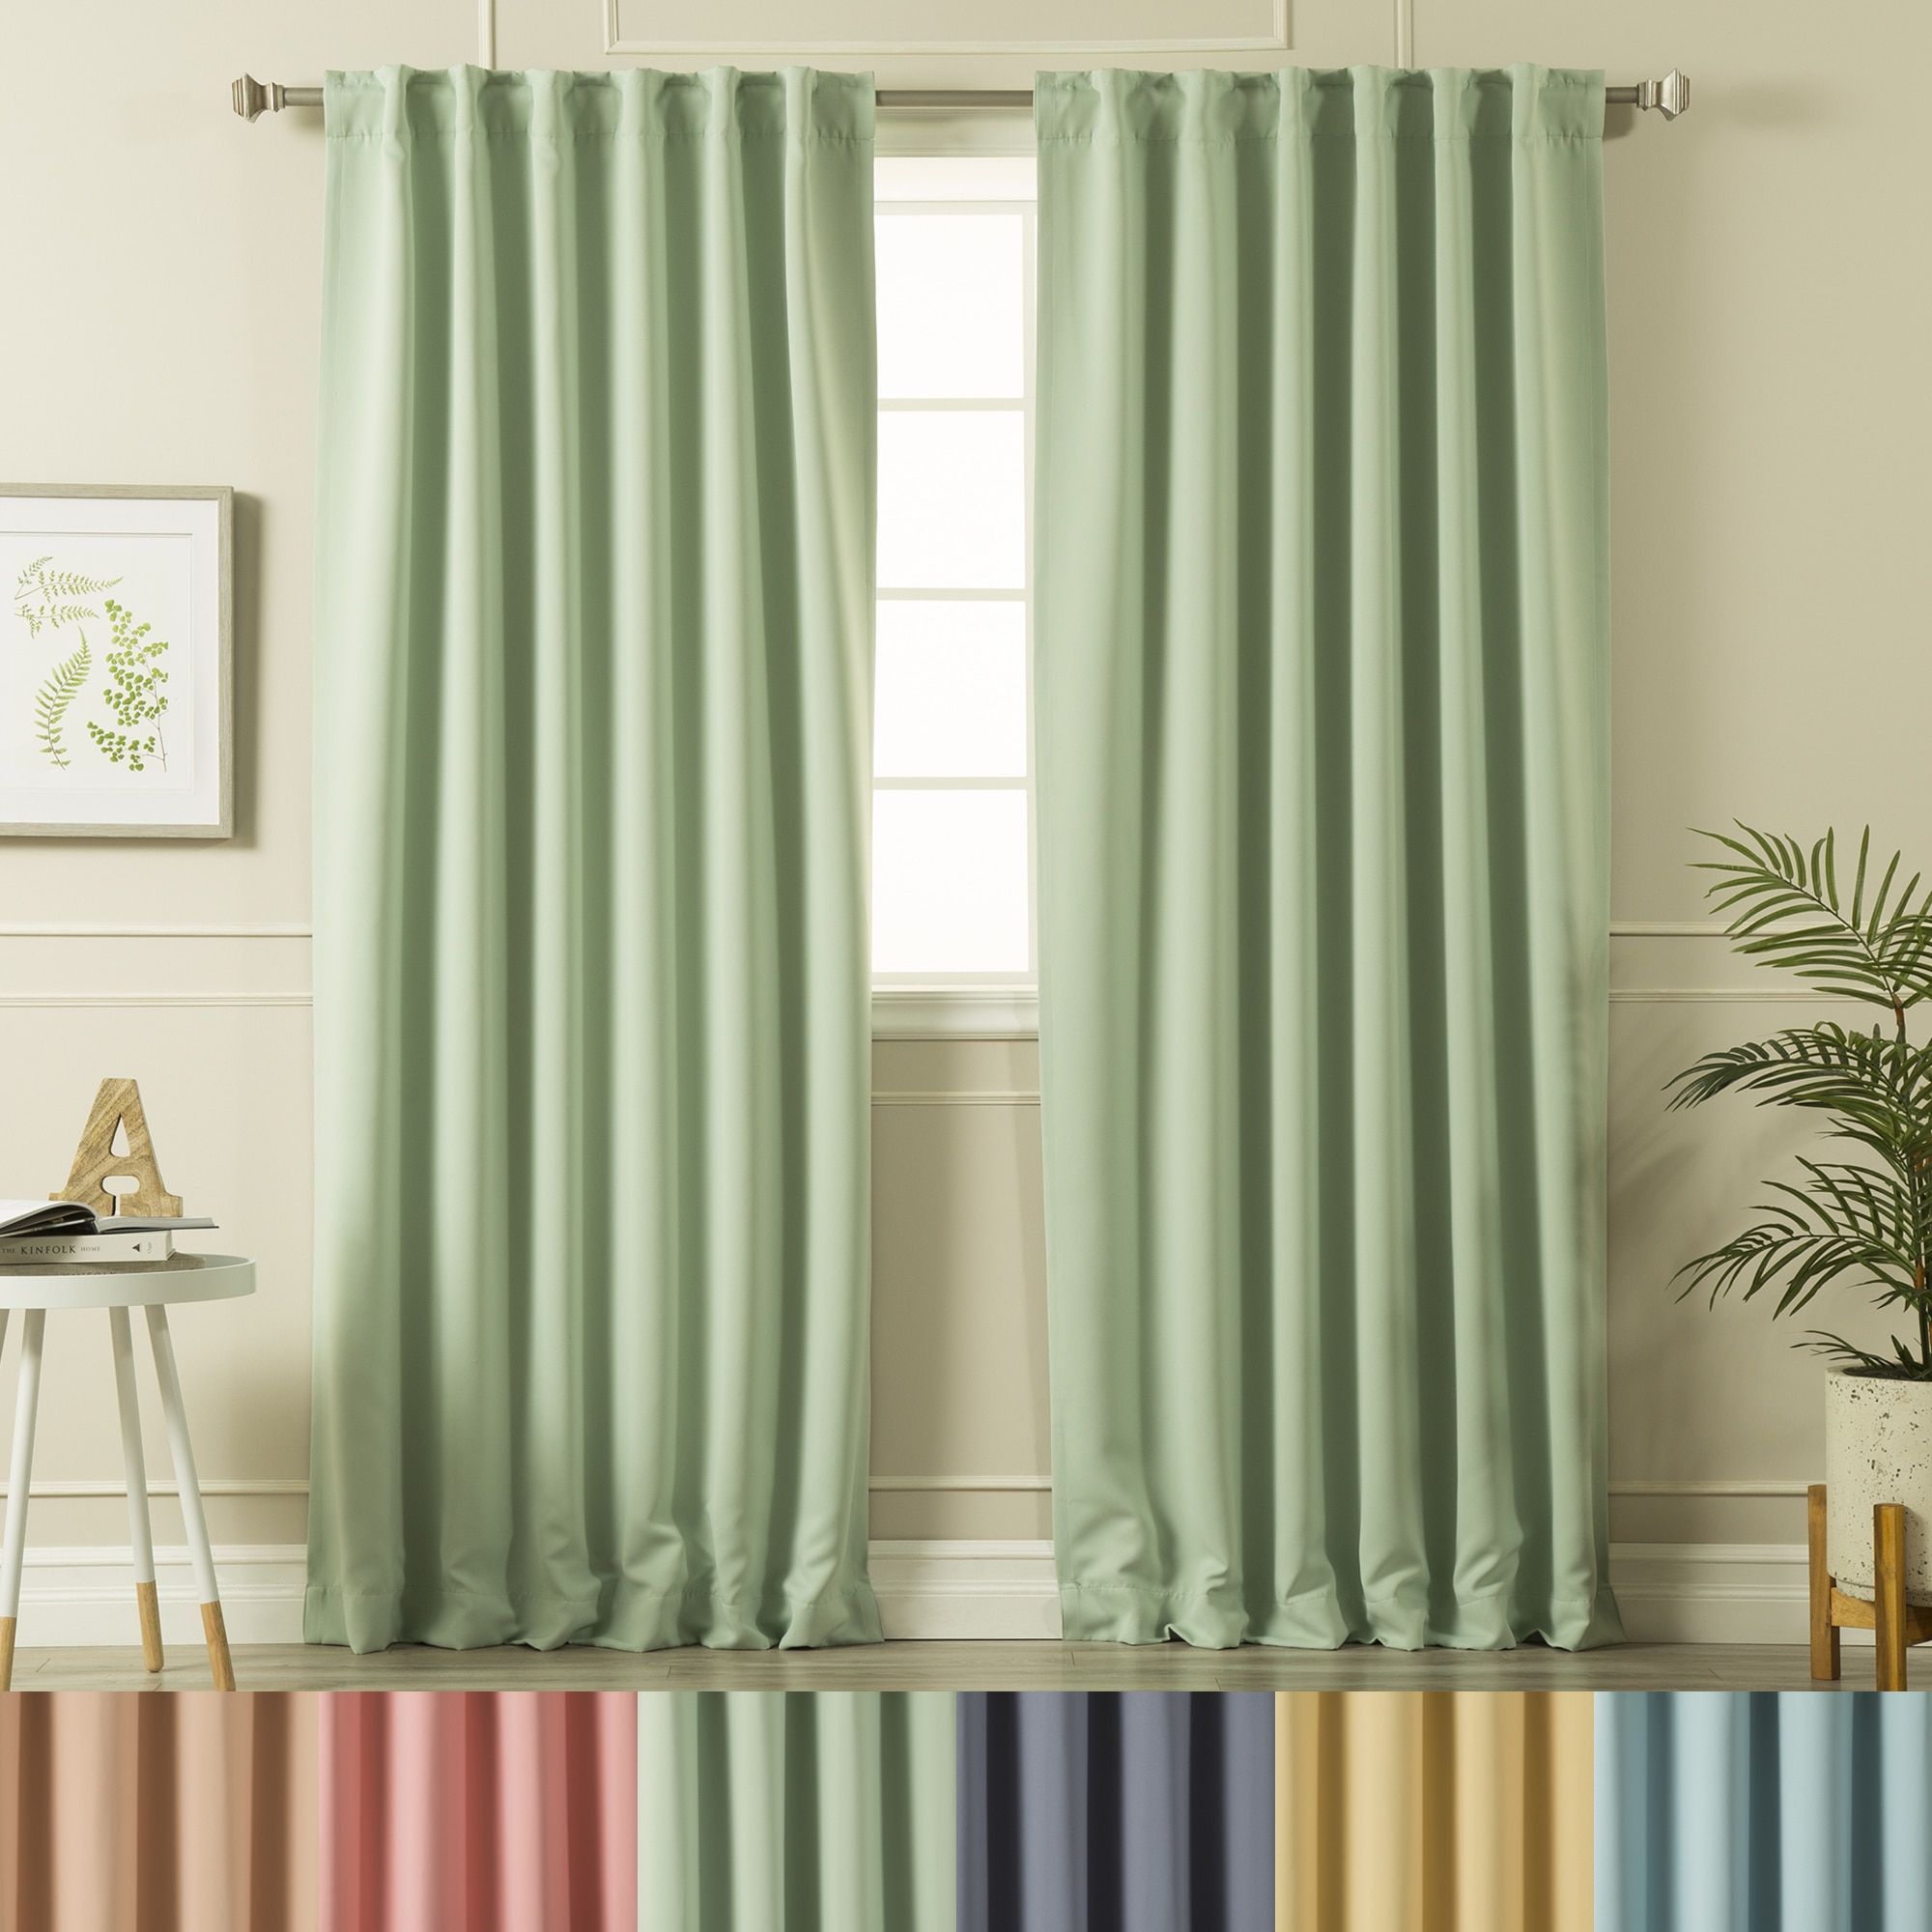 Aurora Home Solid Insulated Thermal Blackout Curtain Panel With Regard To Gracewood Hollow Tucakovic Energy Efficient Fabric Blackout Curtains (View 8 of 20)